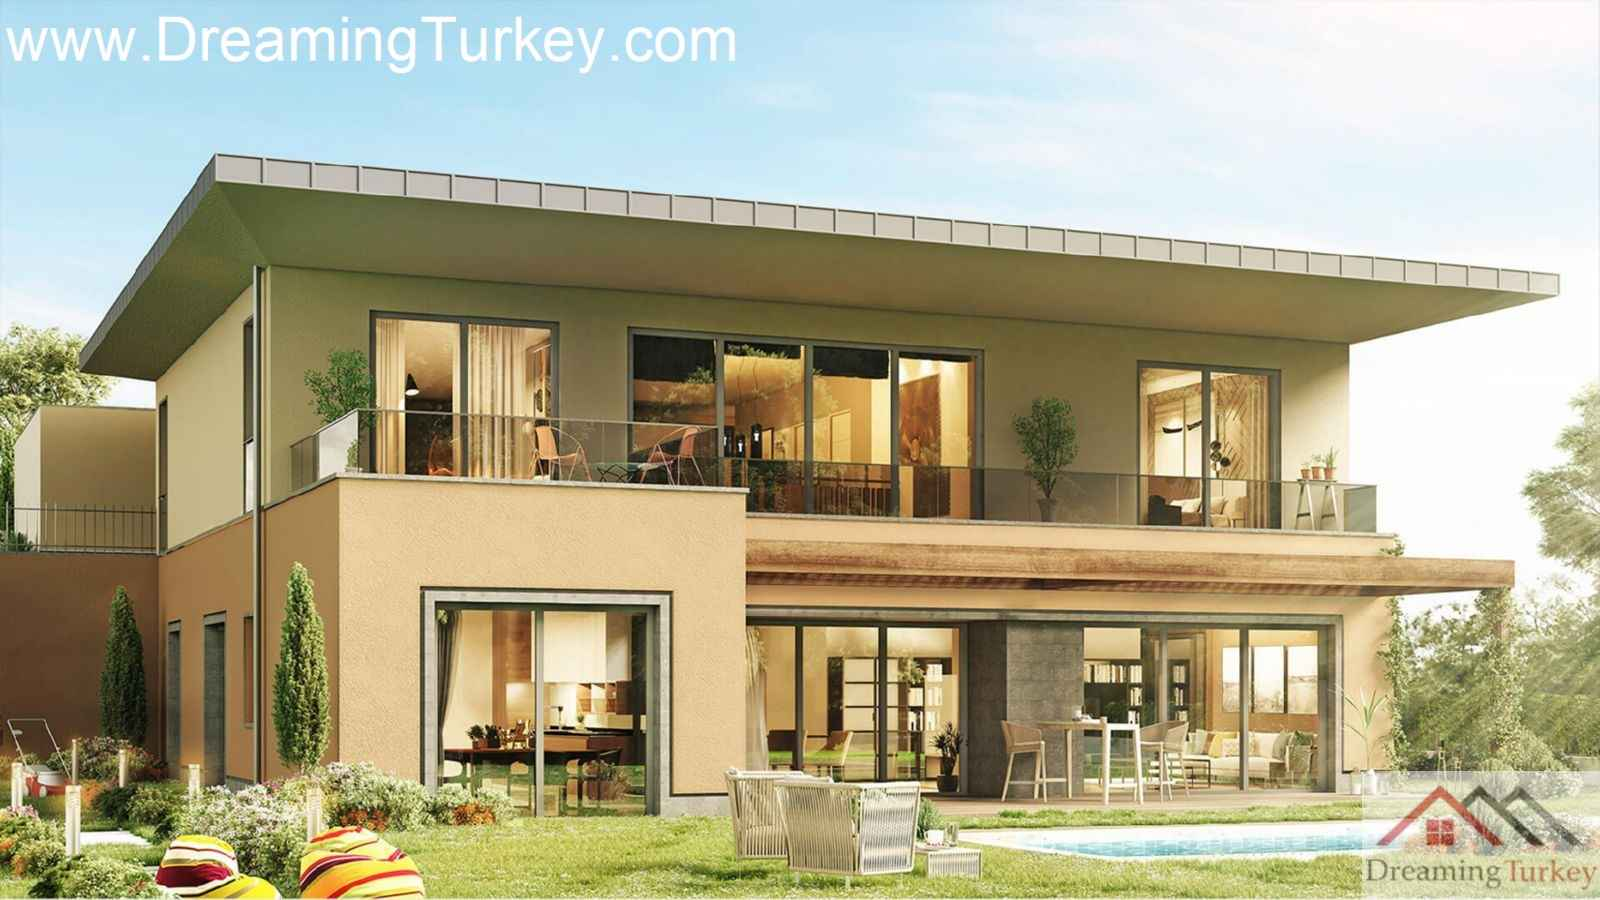 5-Bedroom Detached Duplex Villa with a Lake View in a Complex